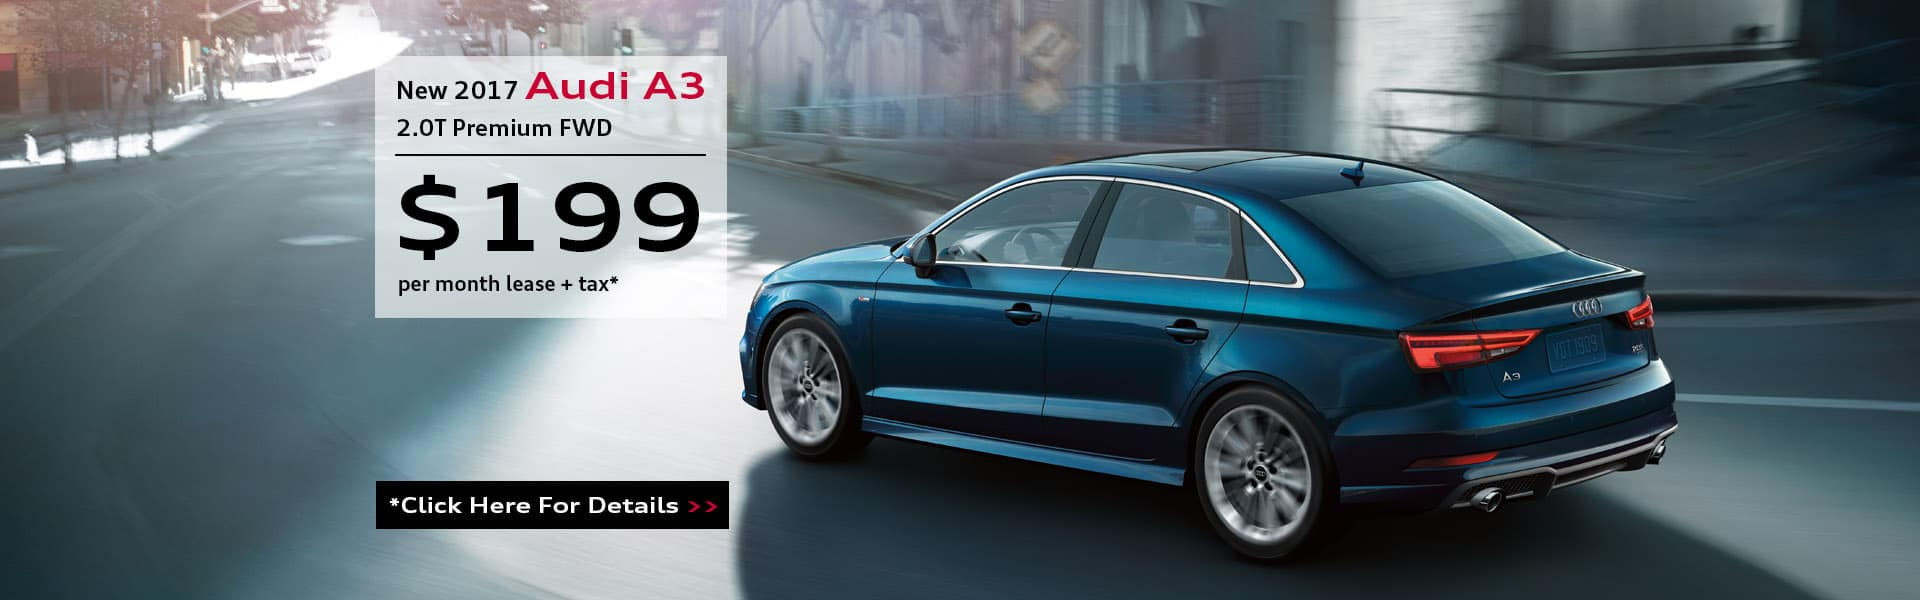 A3 Lease Specials - 199 per Month